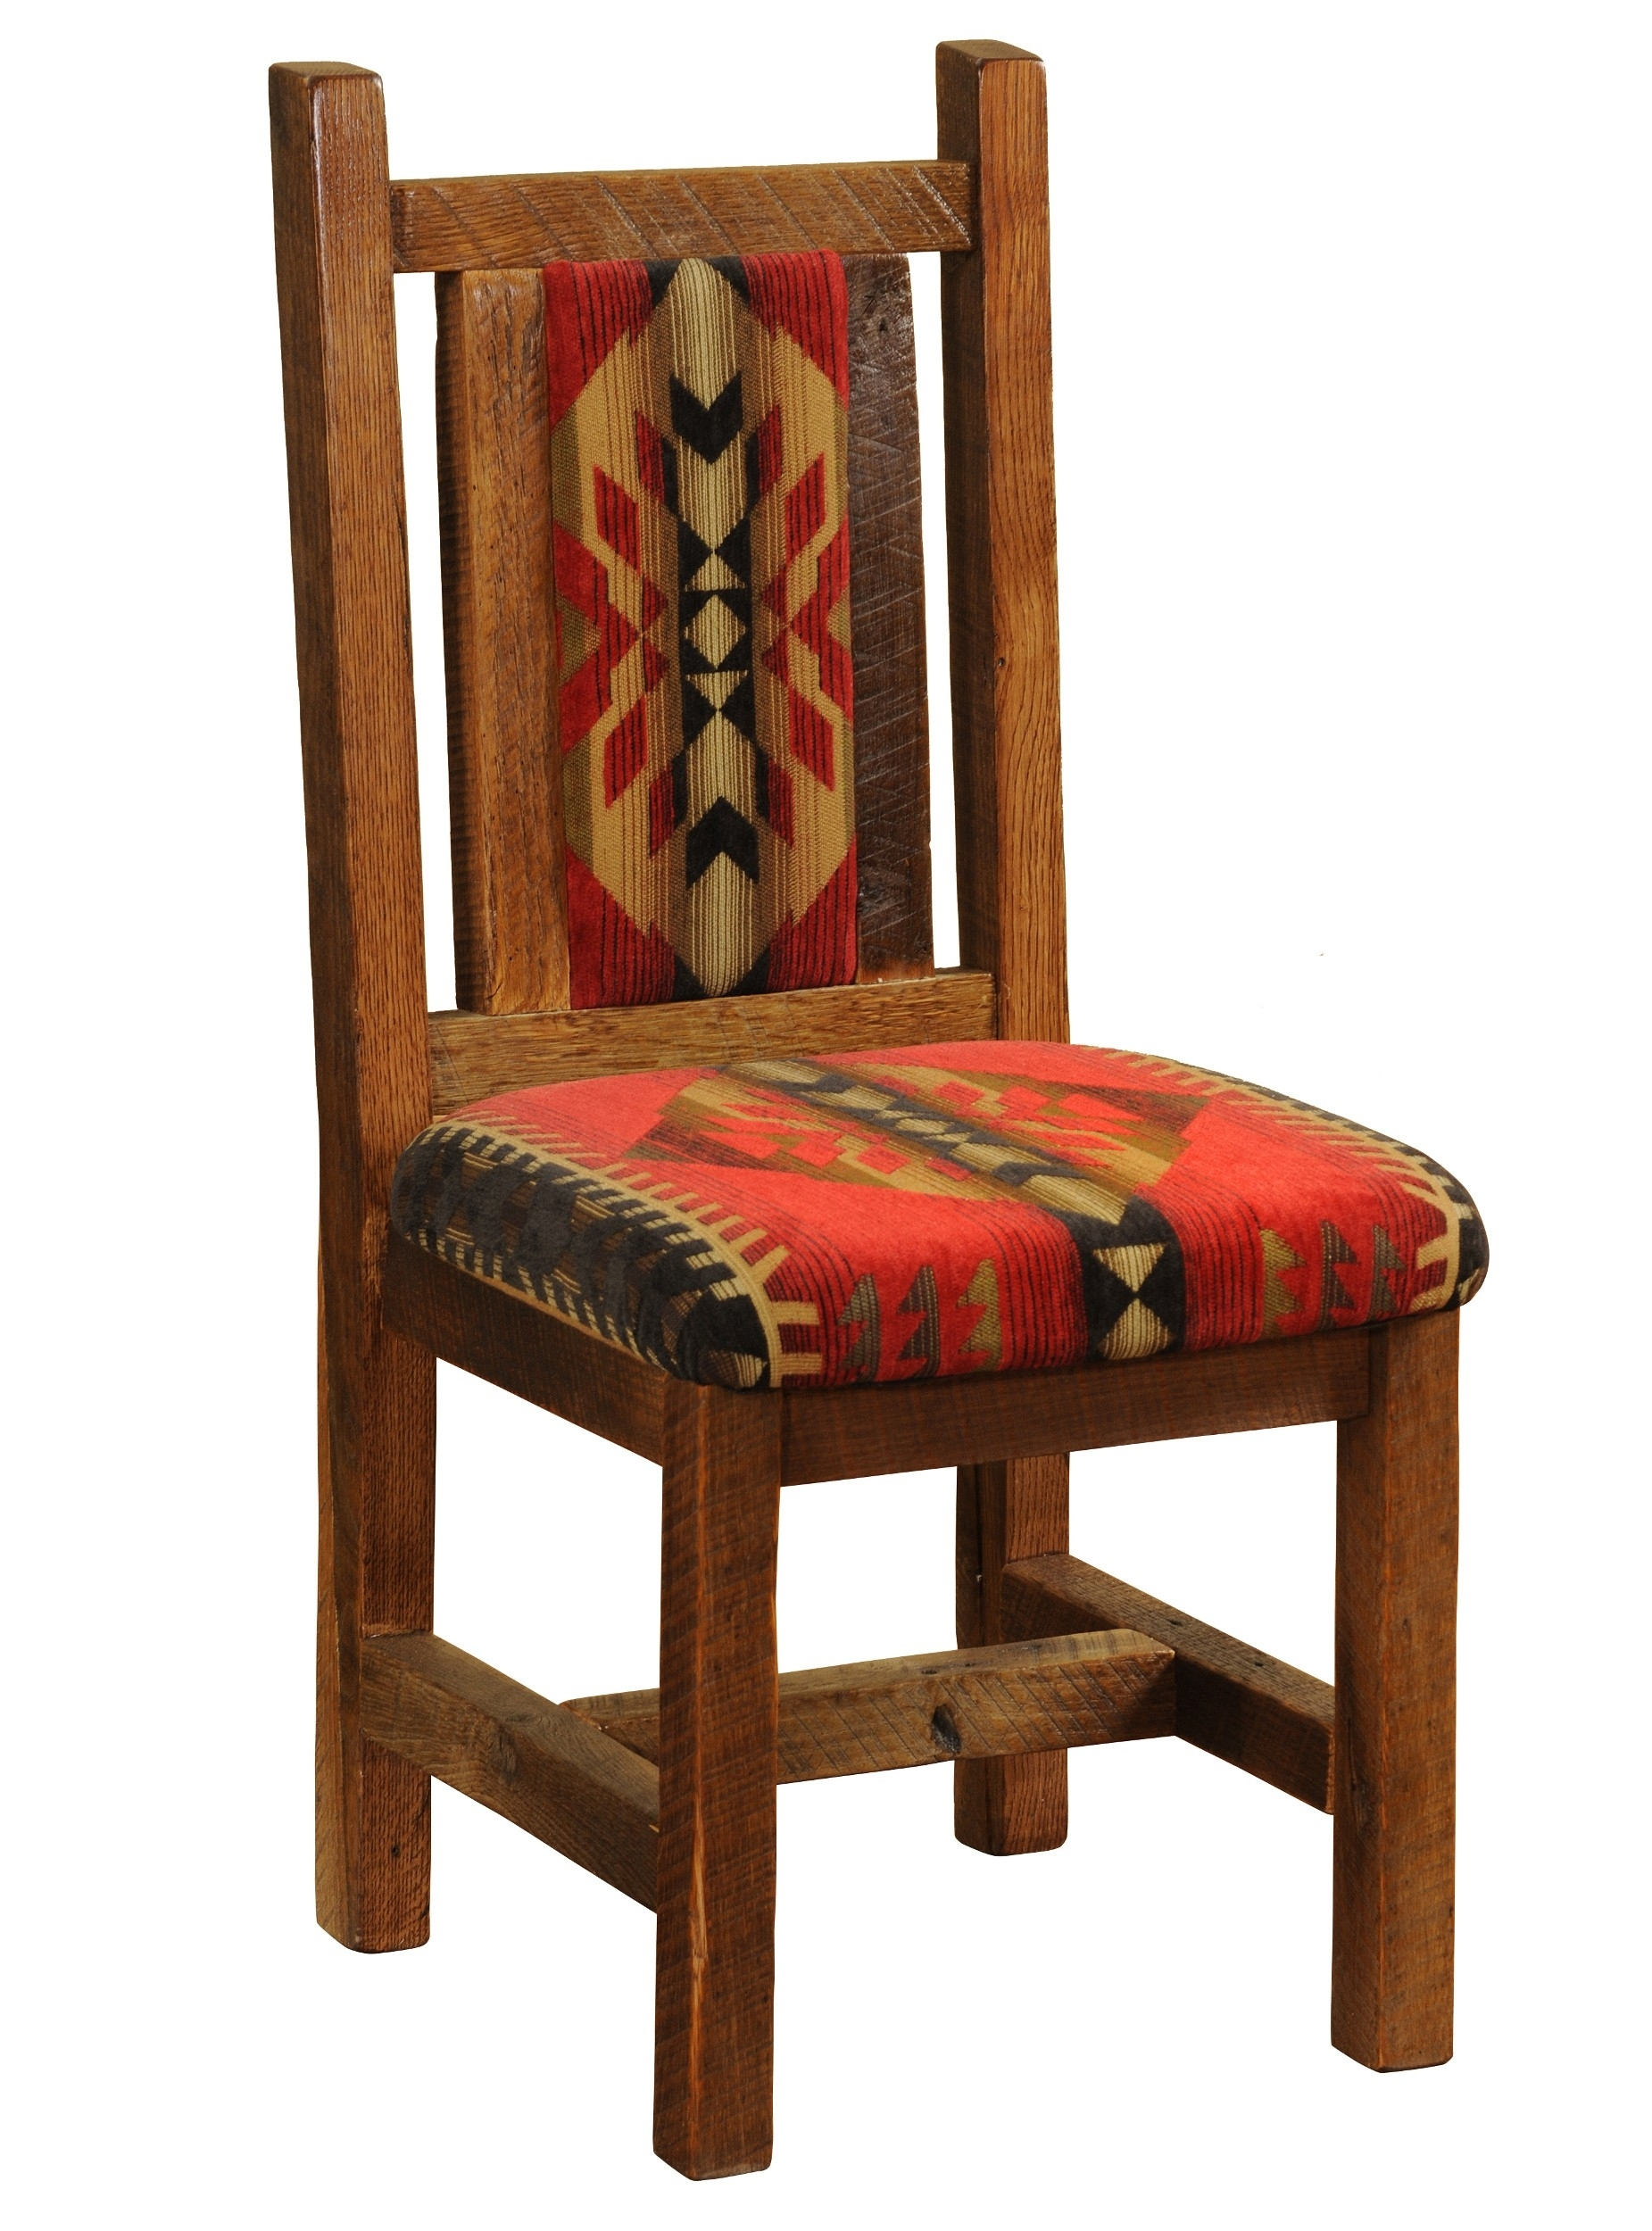 Craftsman Upholstered Side Chairs Within Best And Newest Barnwood Artisan Upholstered Side Chair (View 11 of 20)